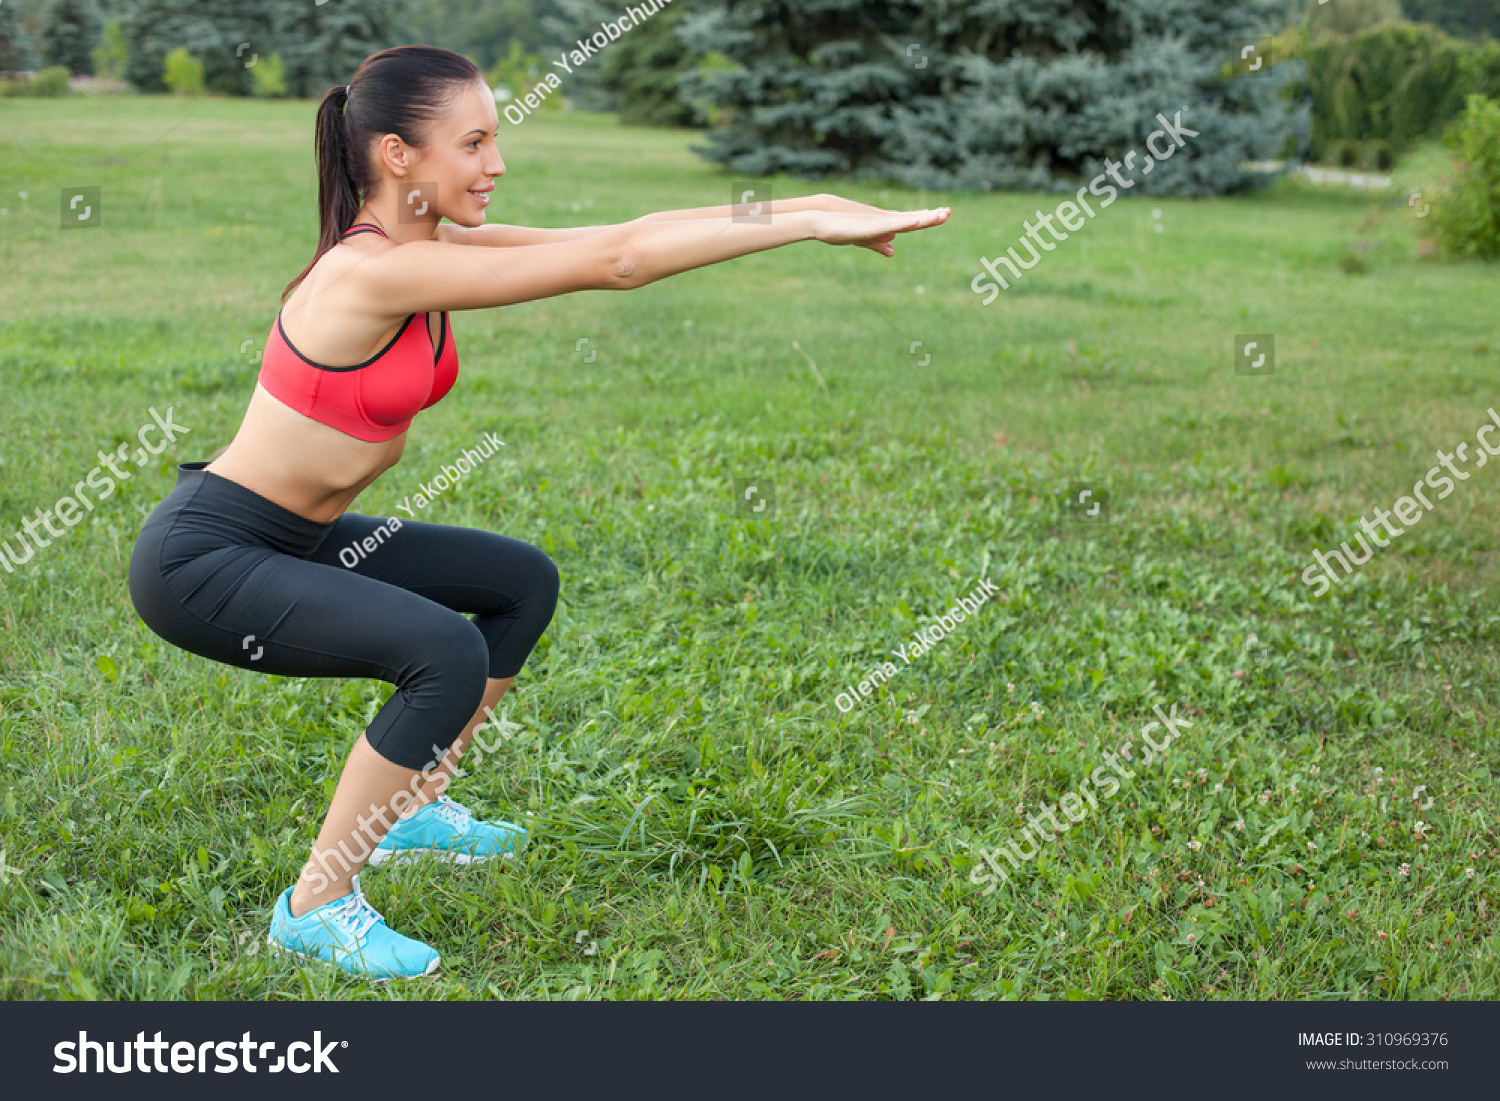 Beautiful woman is doing squats in park She is stretching her arms forward The sportswoman is smiling happily Copy space in right side